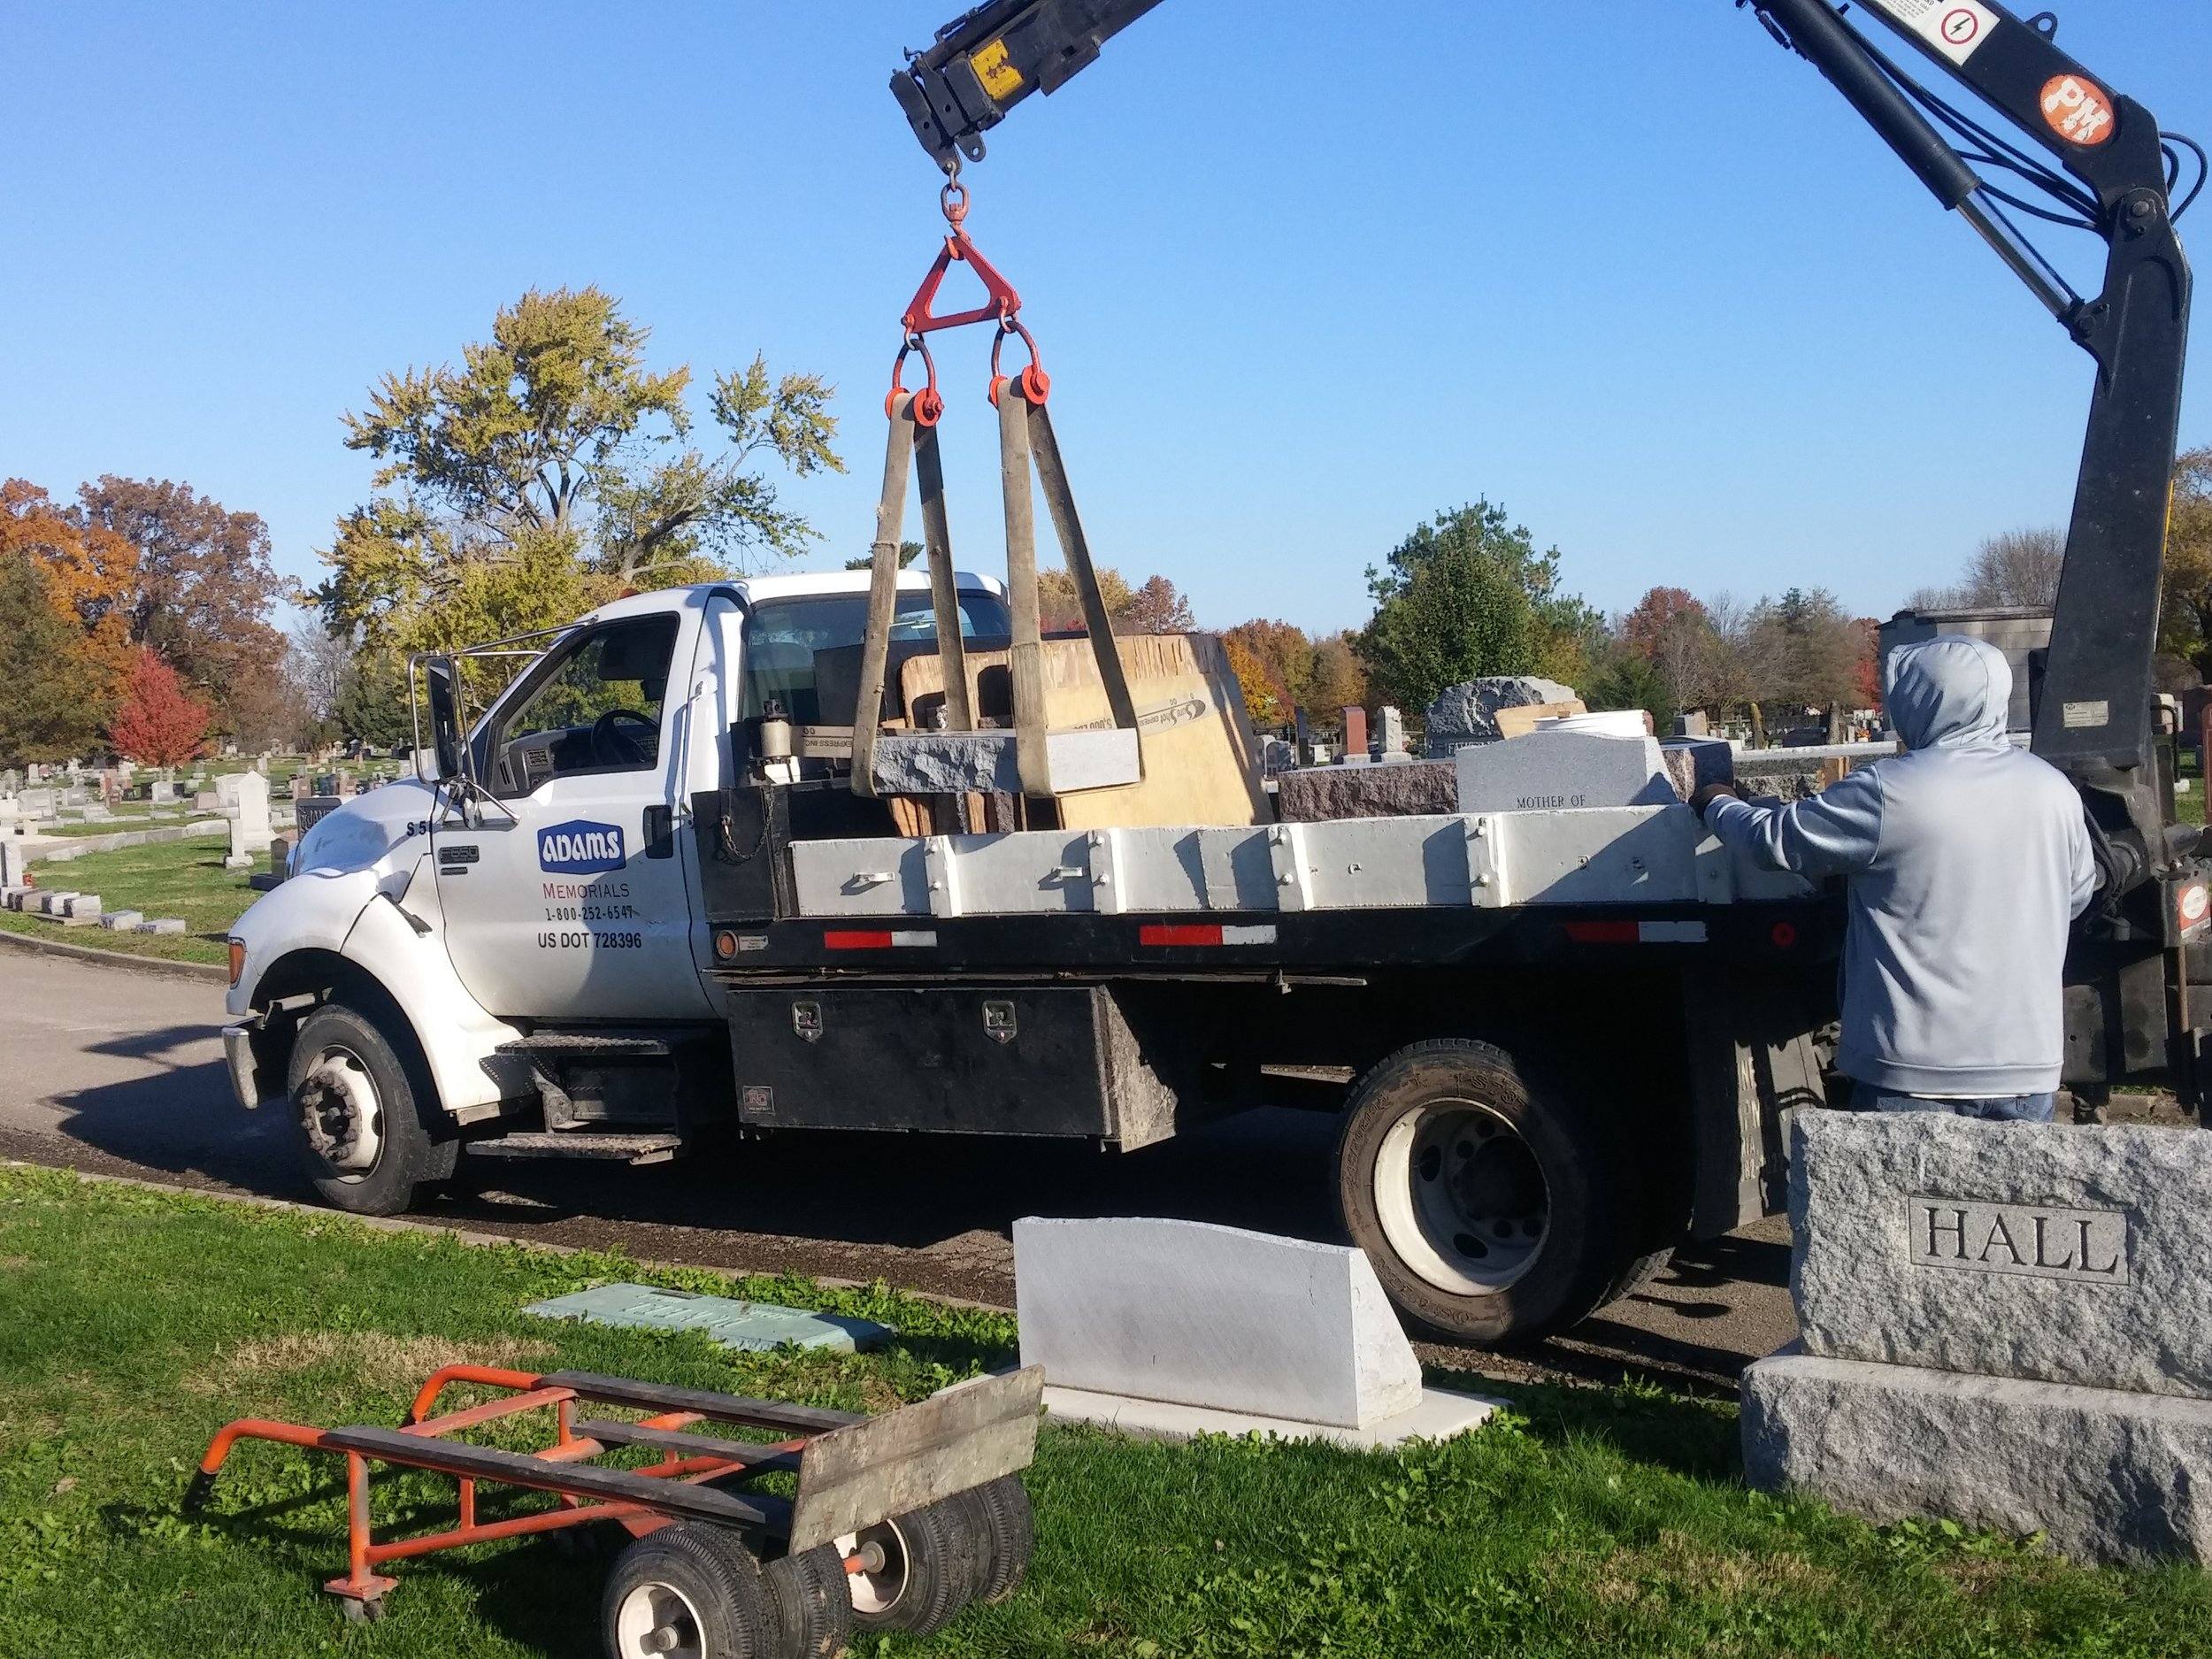 Hydraulic Crane to safely unload